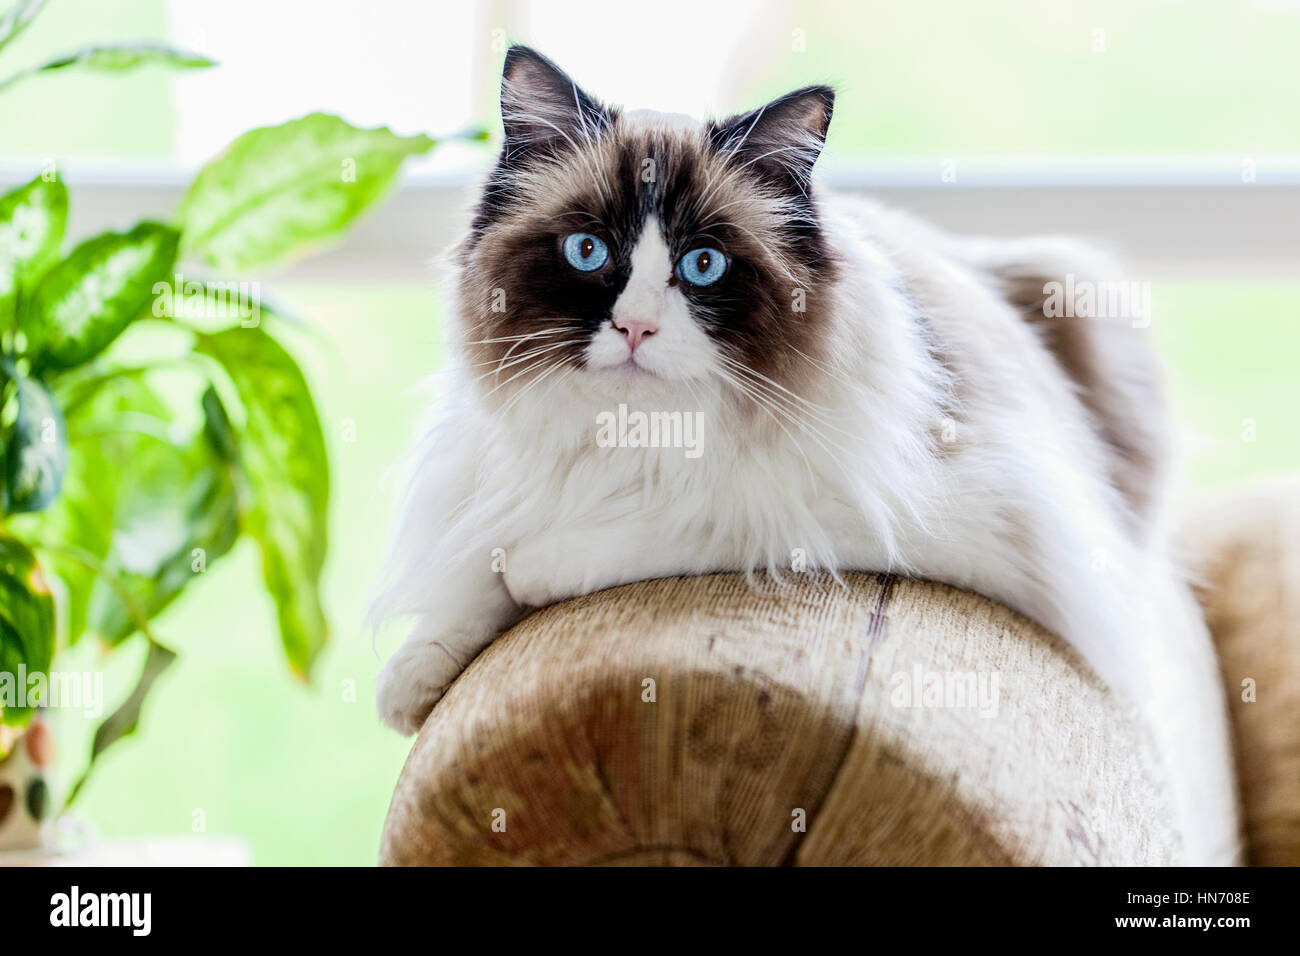 a-large-ragdoll-cat-relaxing-indoors-on-